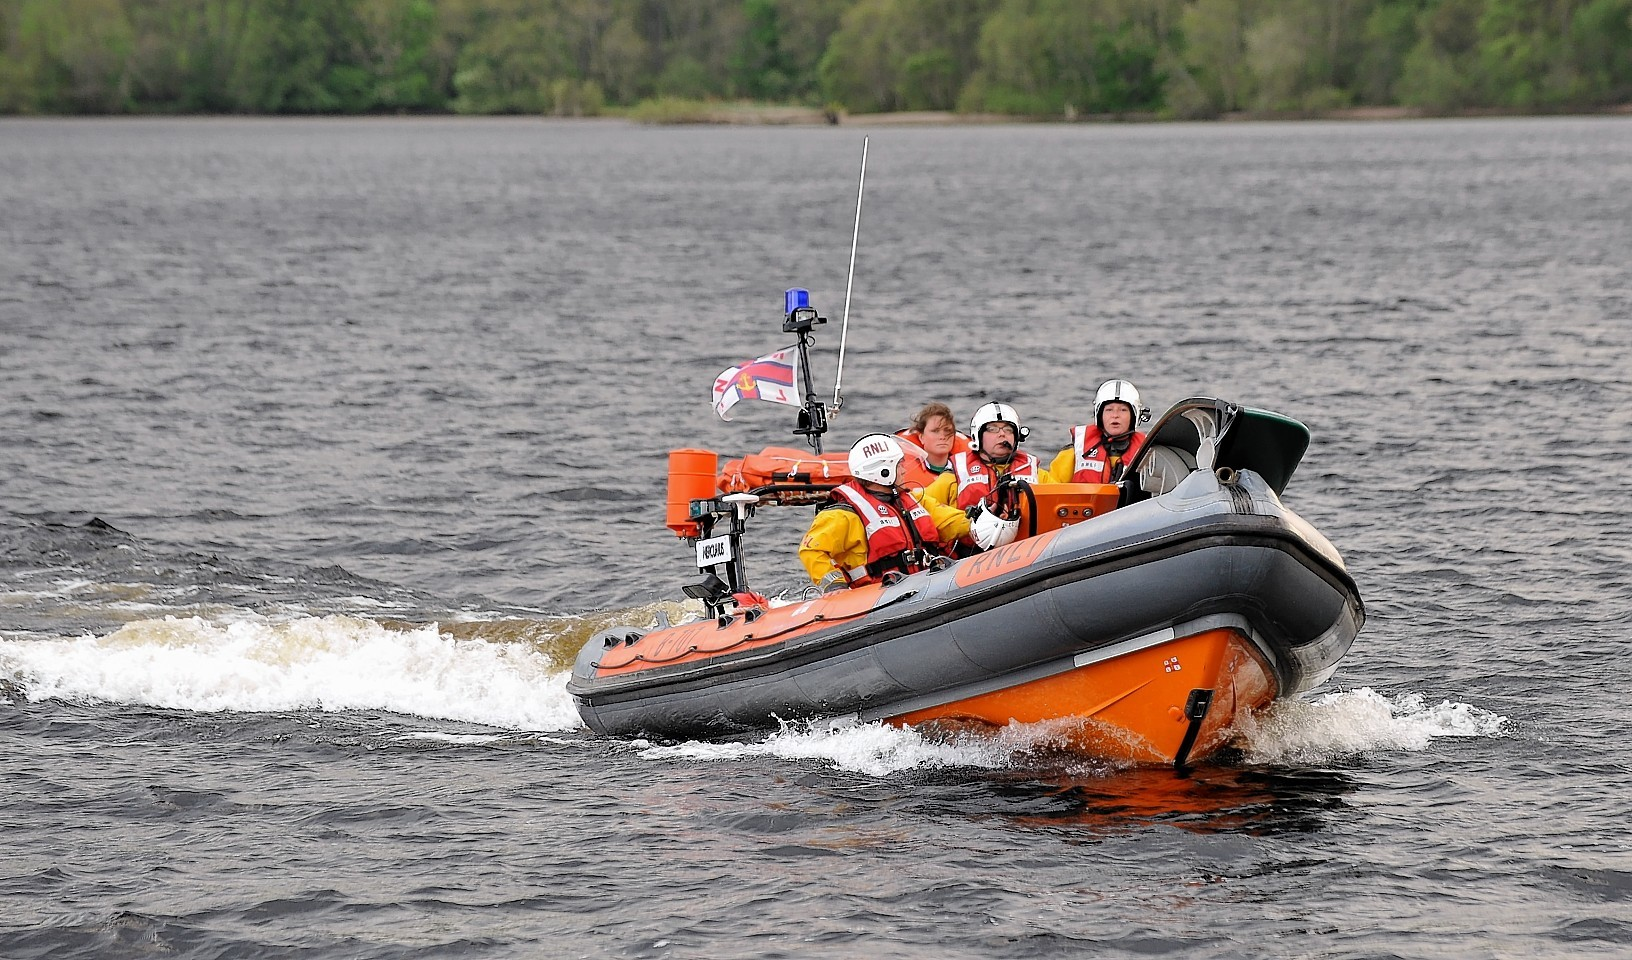 Loch Ness Lifeboat